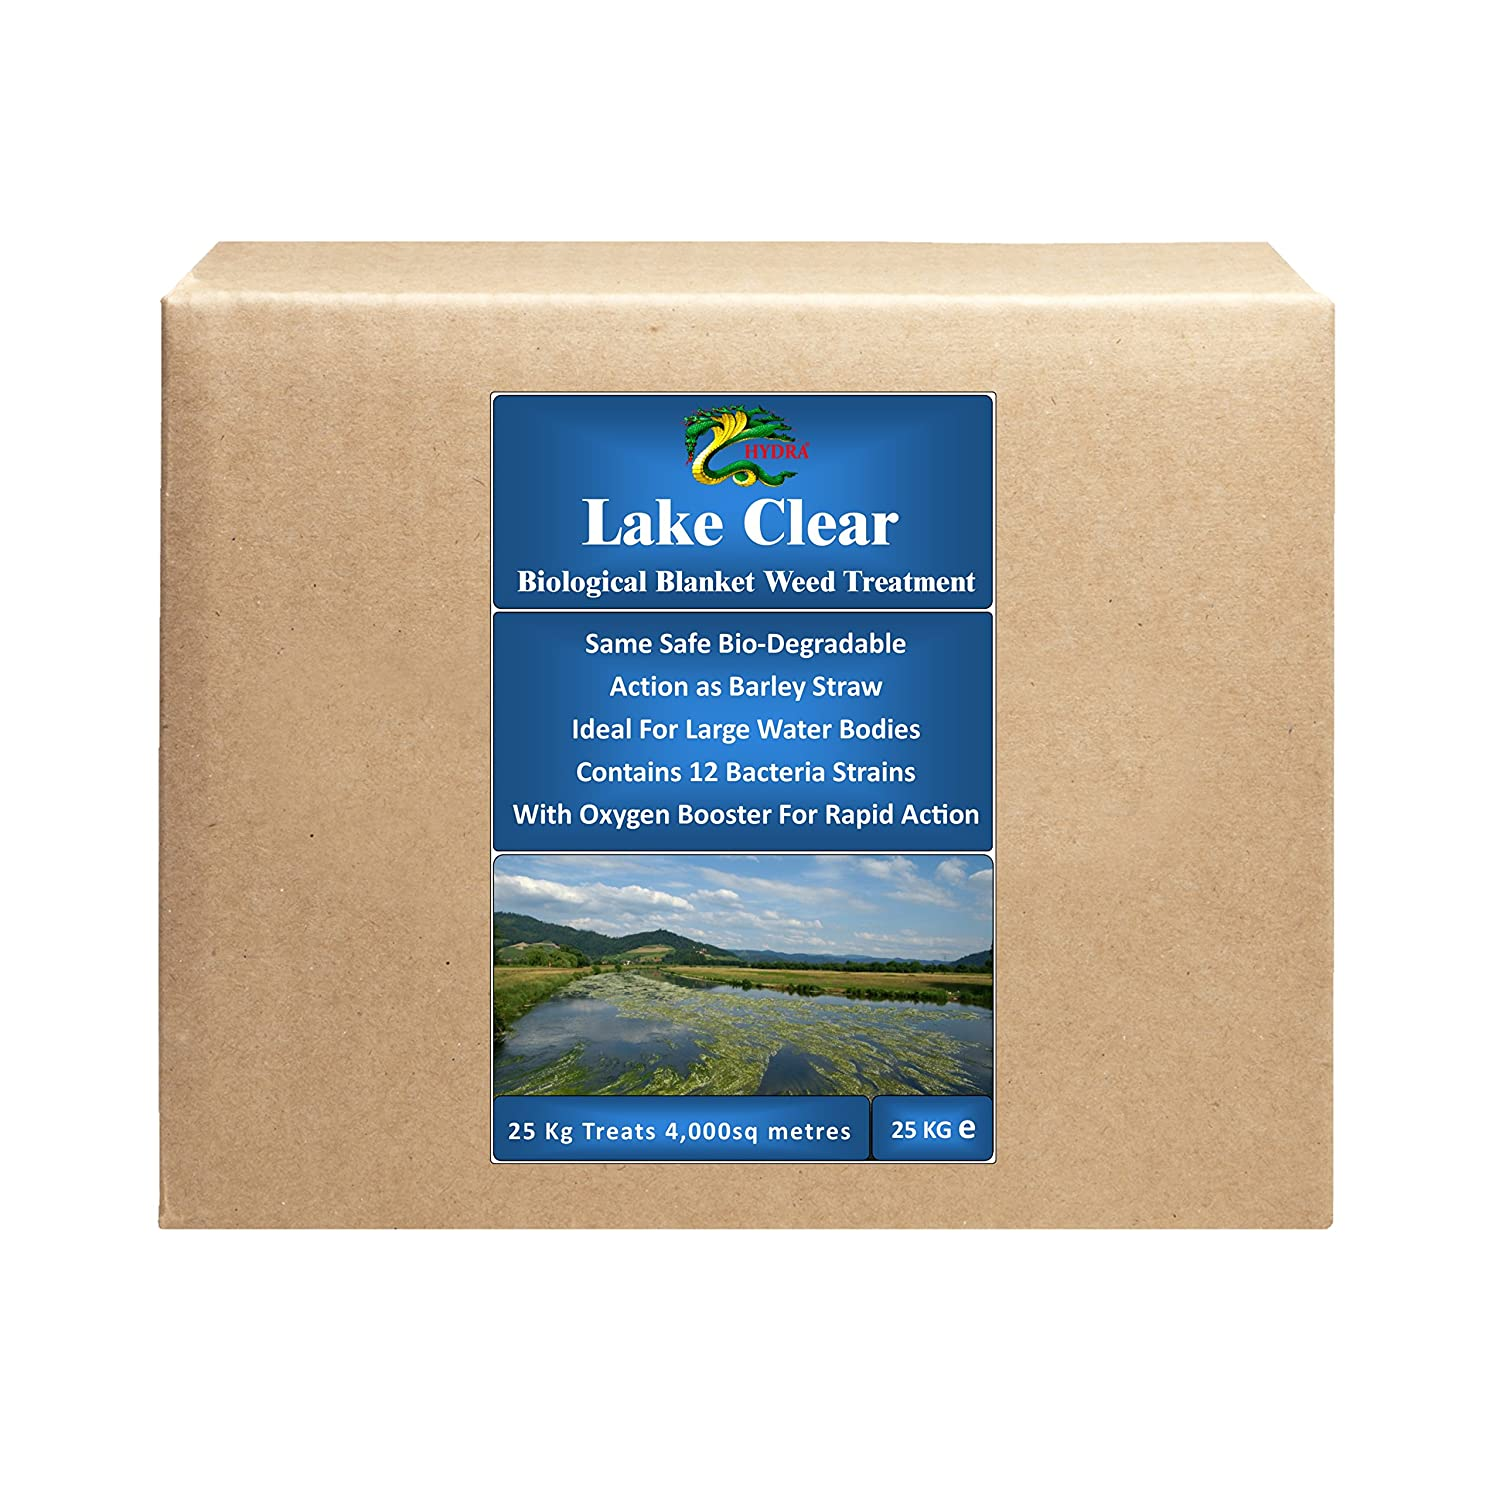 HYDRA LAKE CLEAR 1 x 25 KG Lake Blanket Weed Remover Hydra International Ltd